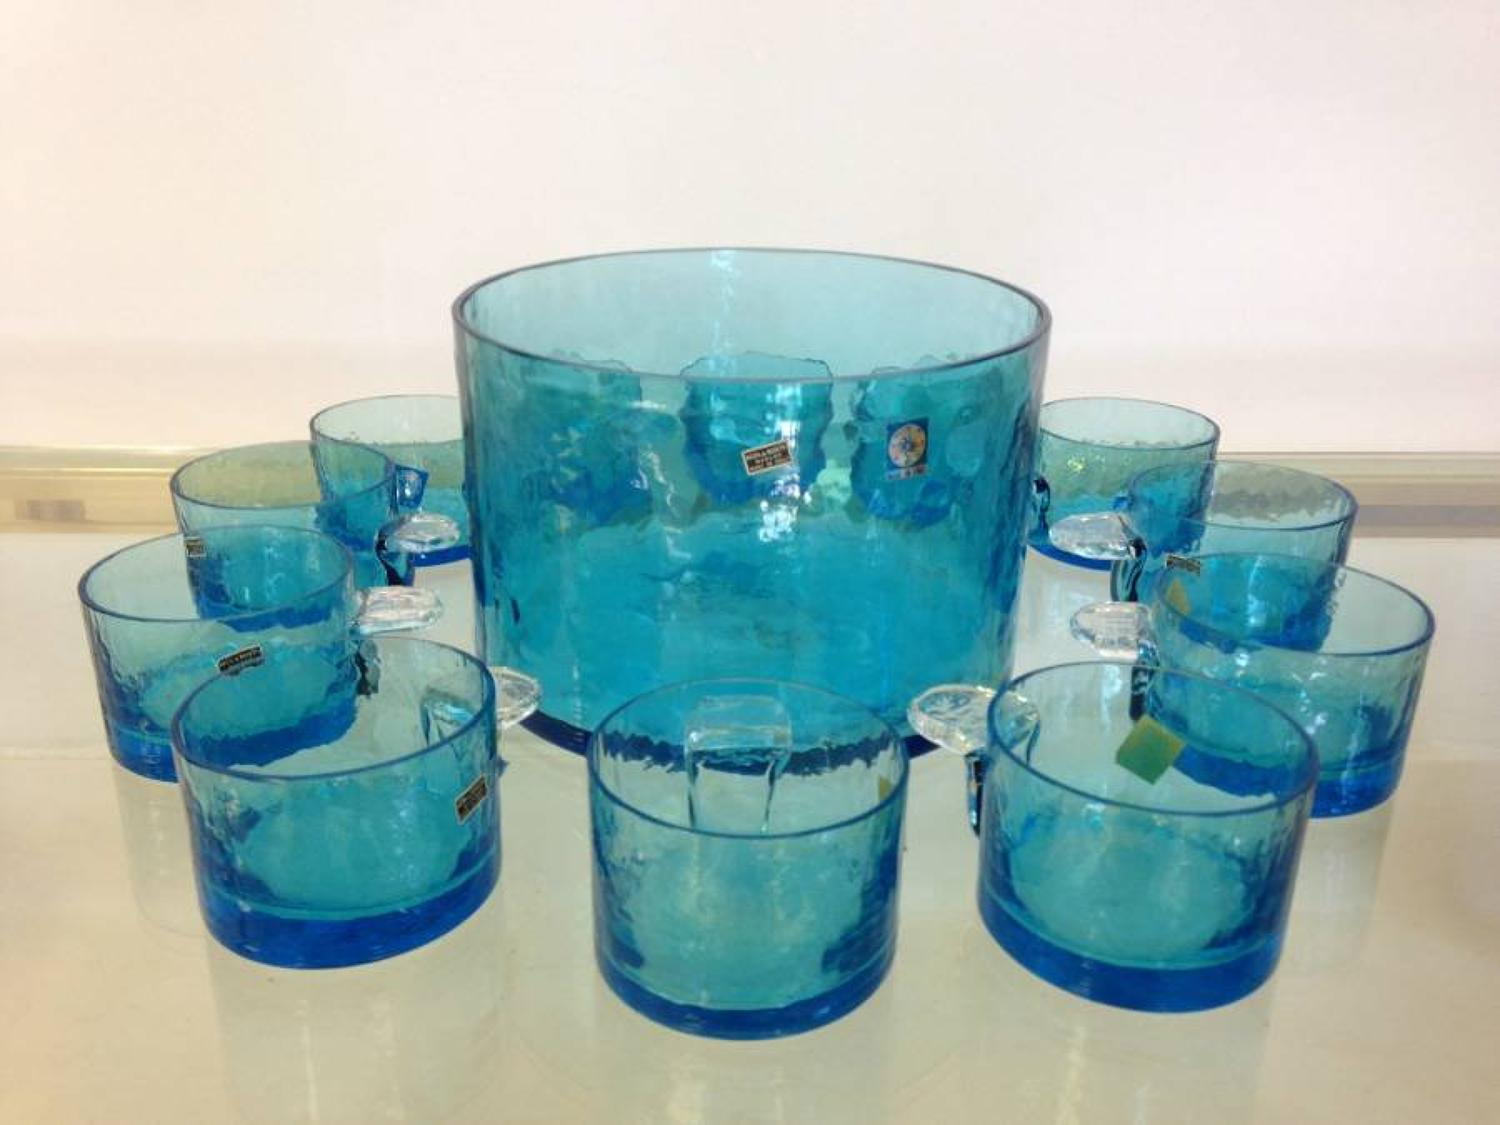 Murano punch bowl and glasses